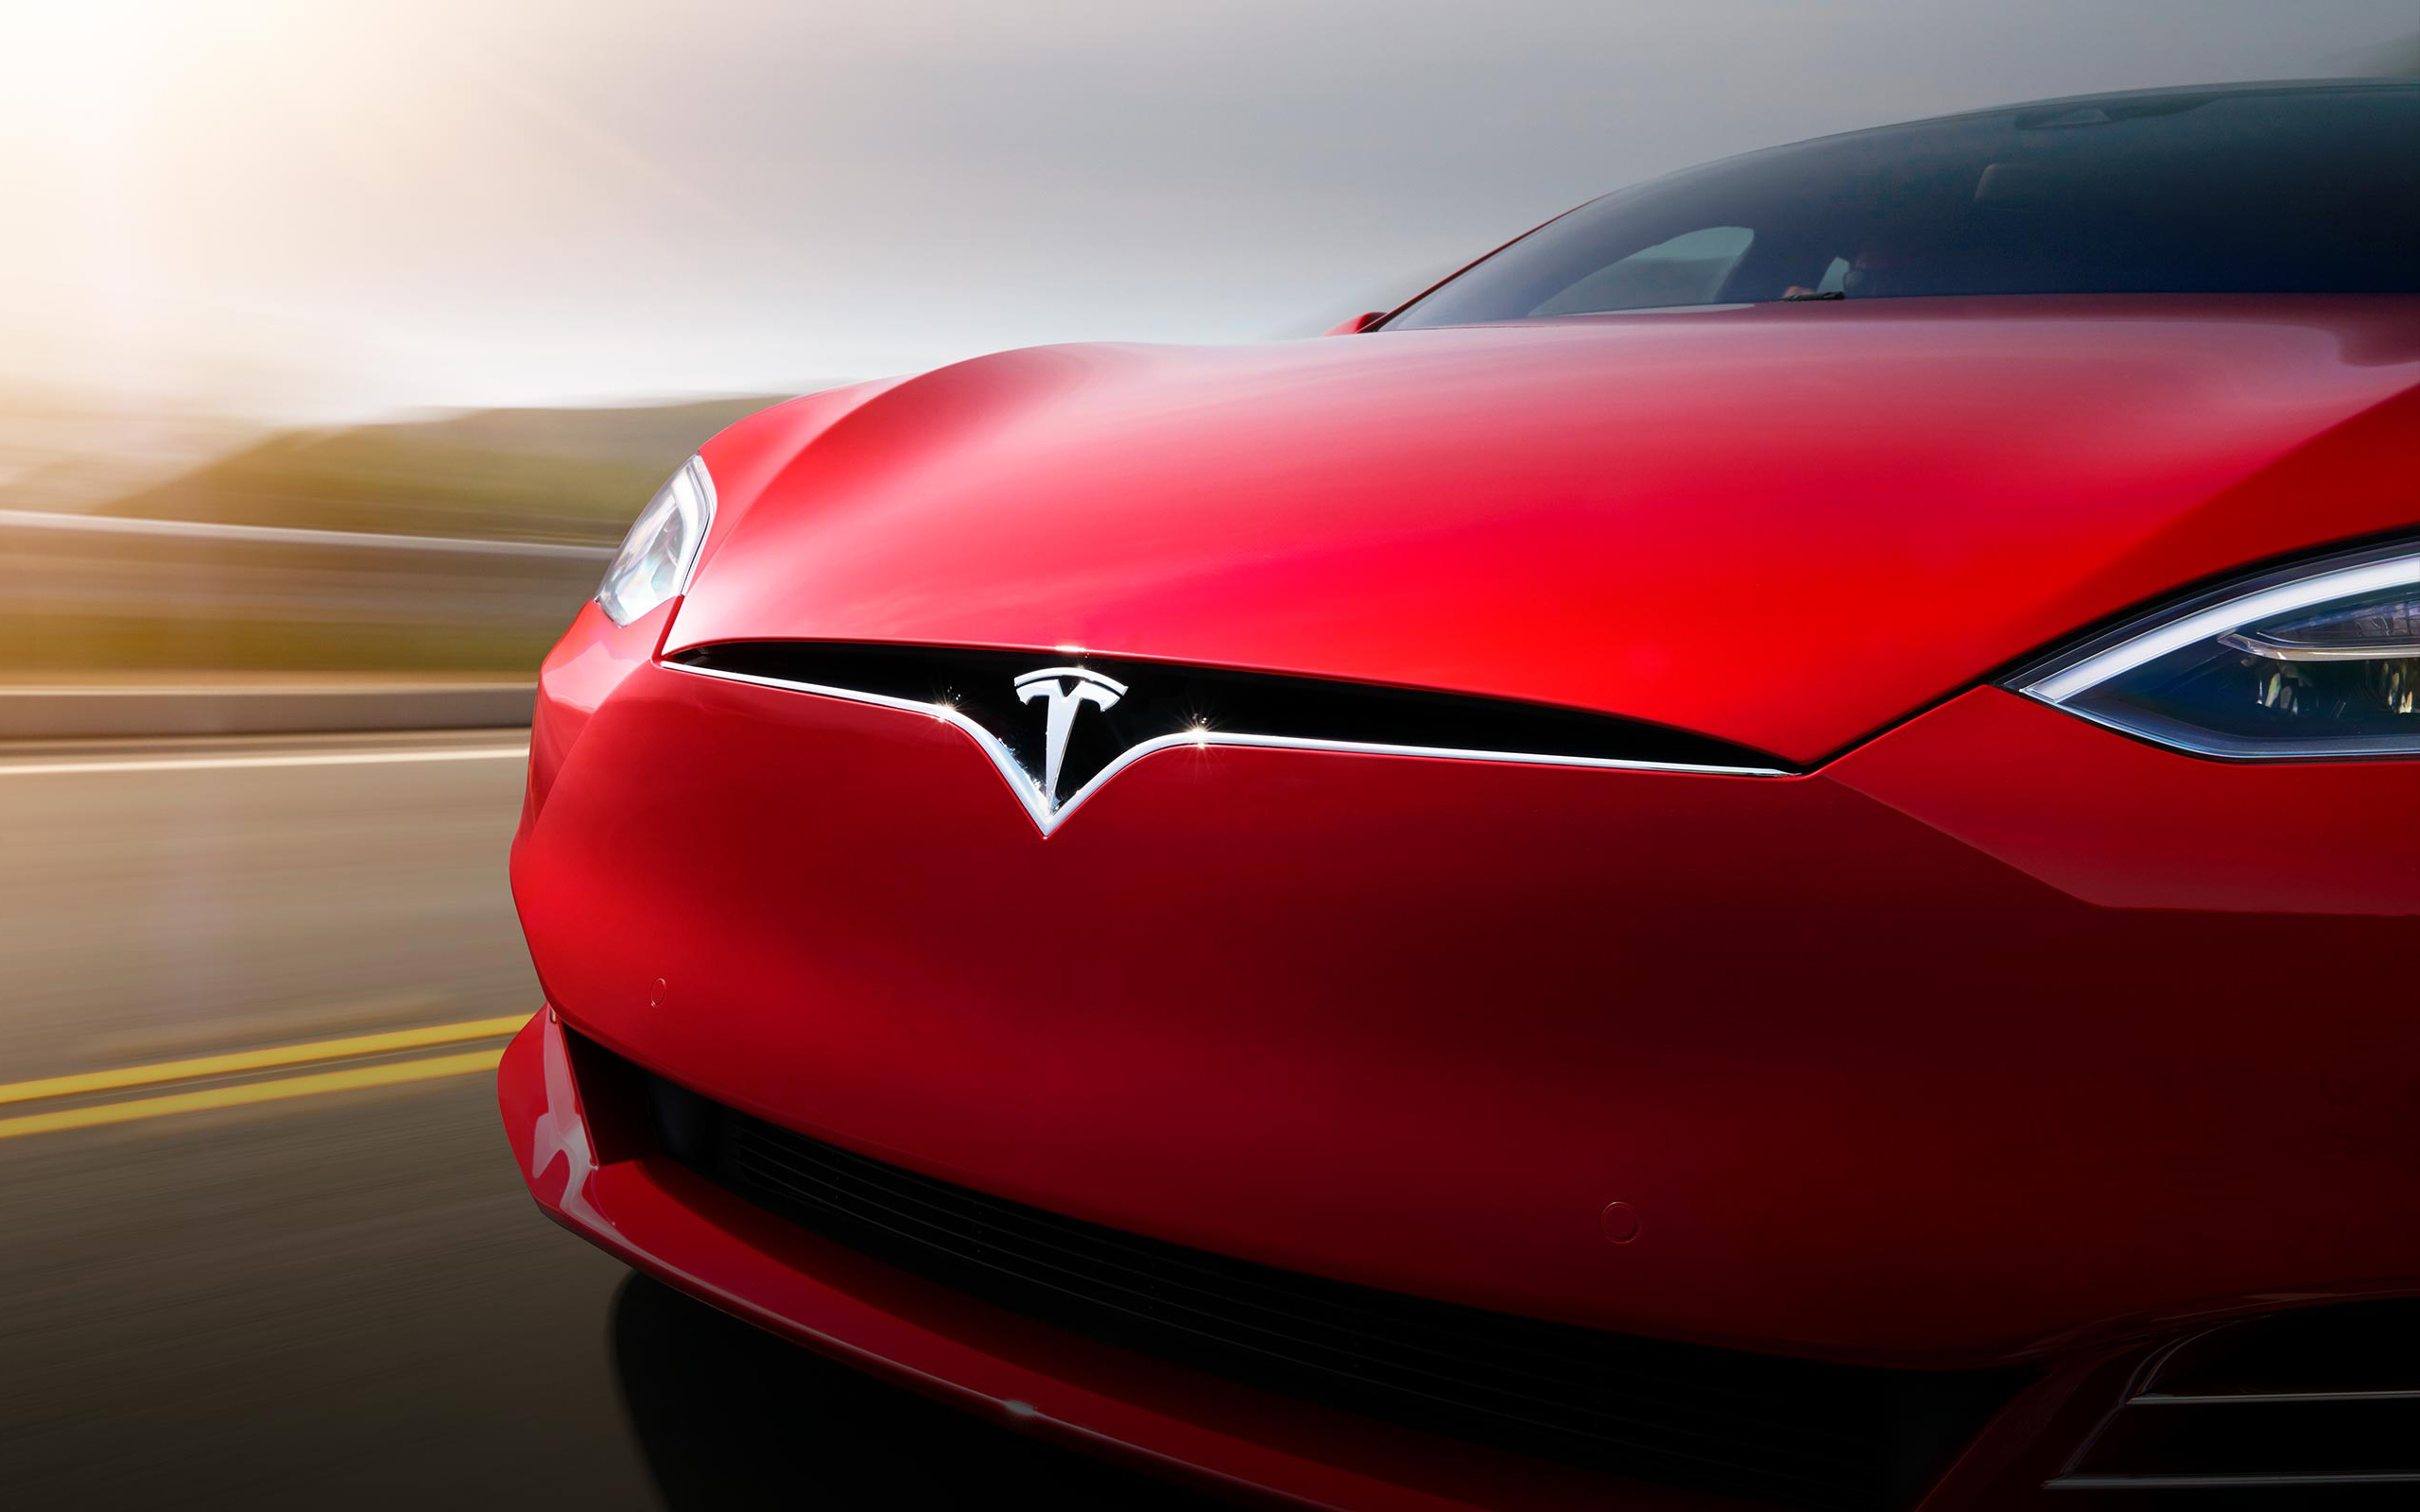 tesla model x widescreen hd wallpaper 62156 3840x2562 px